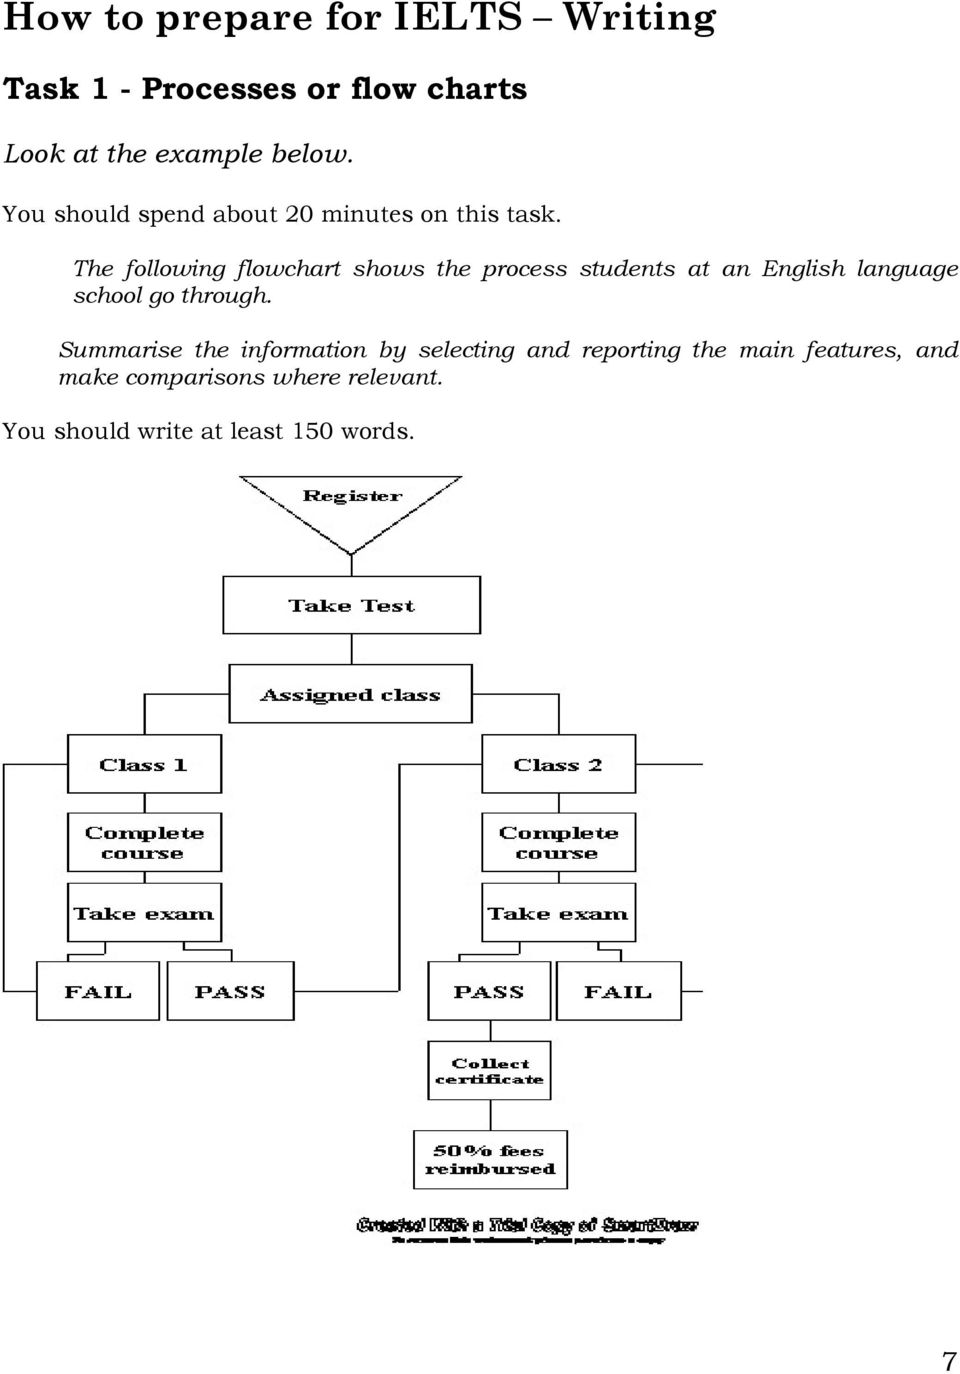 hight resolution of the following flowchart shows the process students at an english language school go